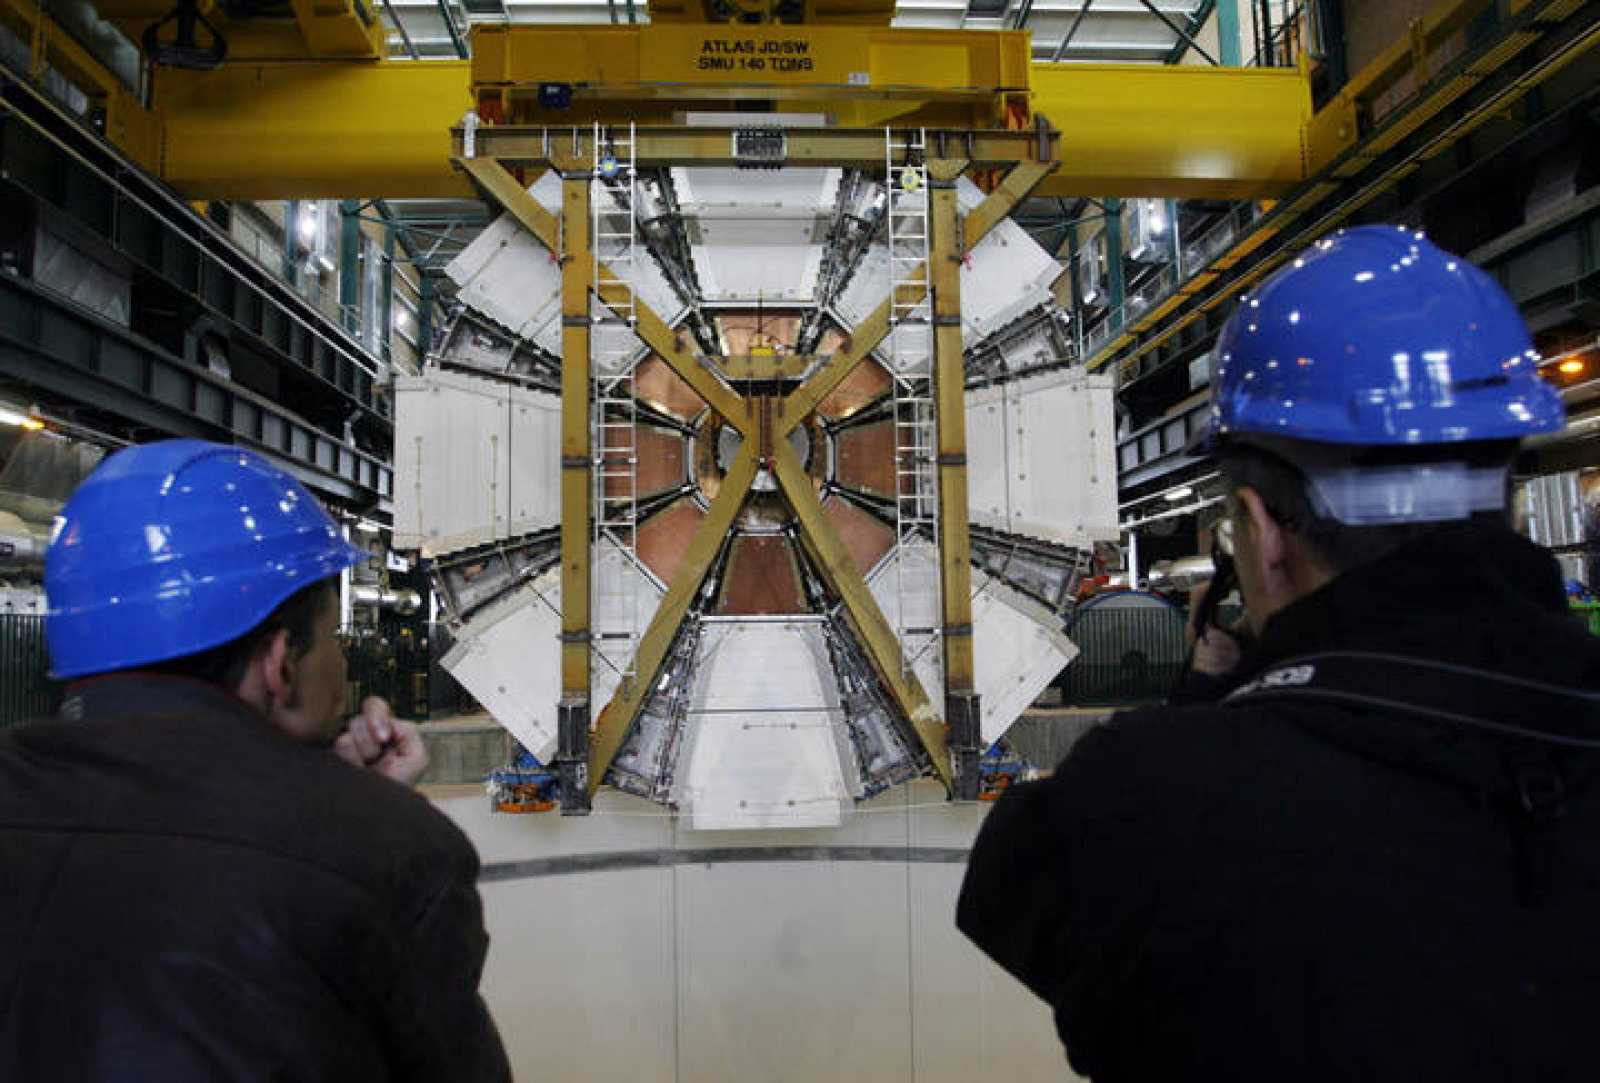 The last element of the ATLAS experiment is lowered into the cave at the CERN in Meyrin near Geneva